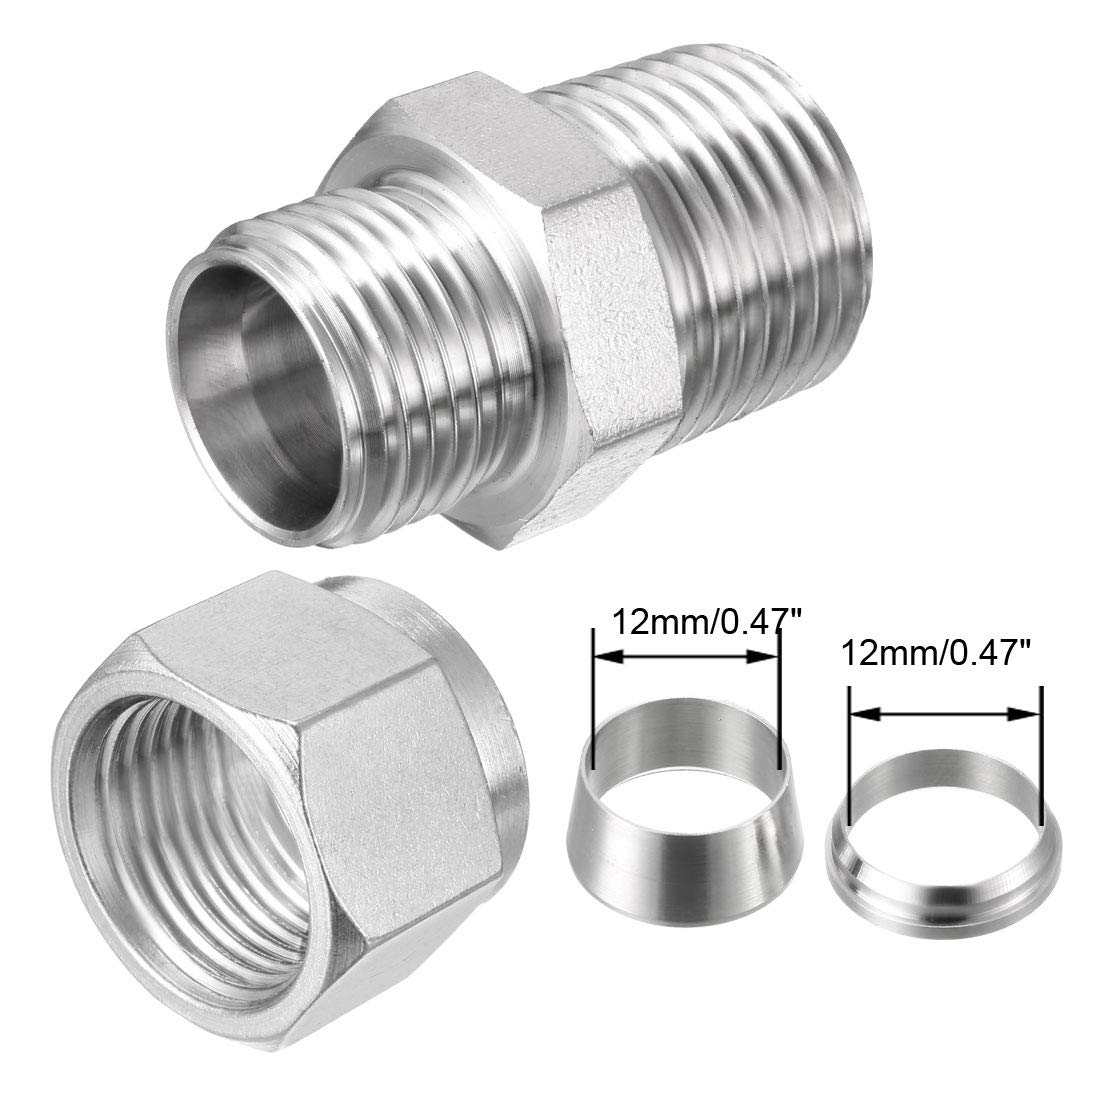 uxcell Stainless Steel Compression Tube Fitting 1//2-inch NPT Male x Ф12 Tube OD